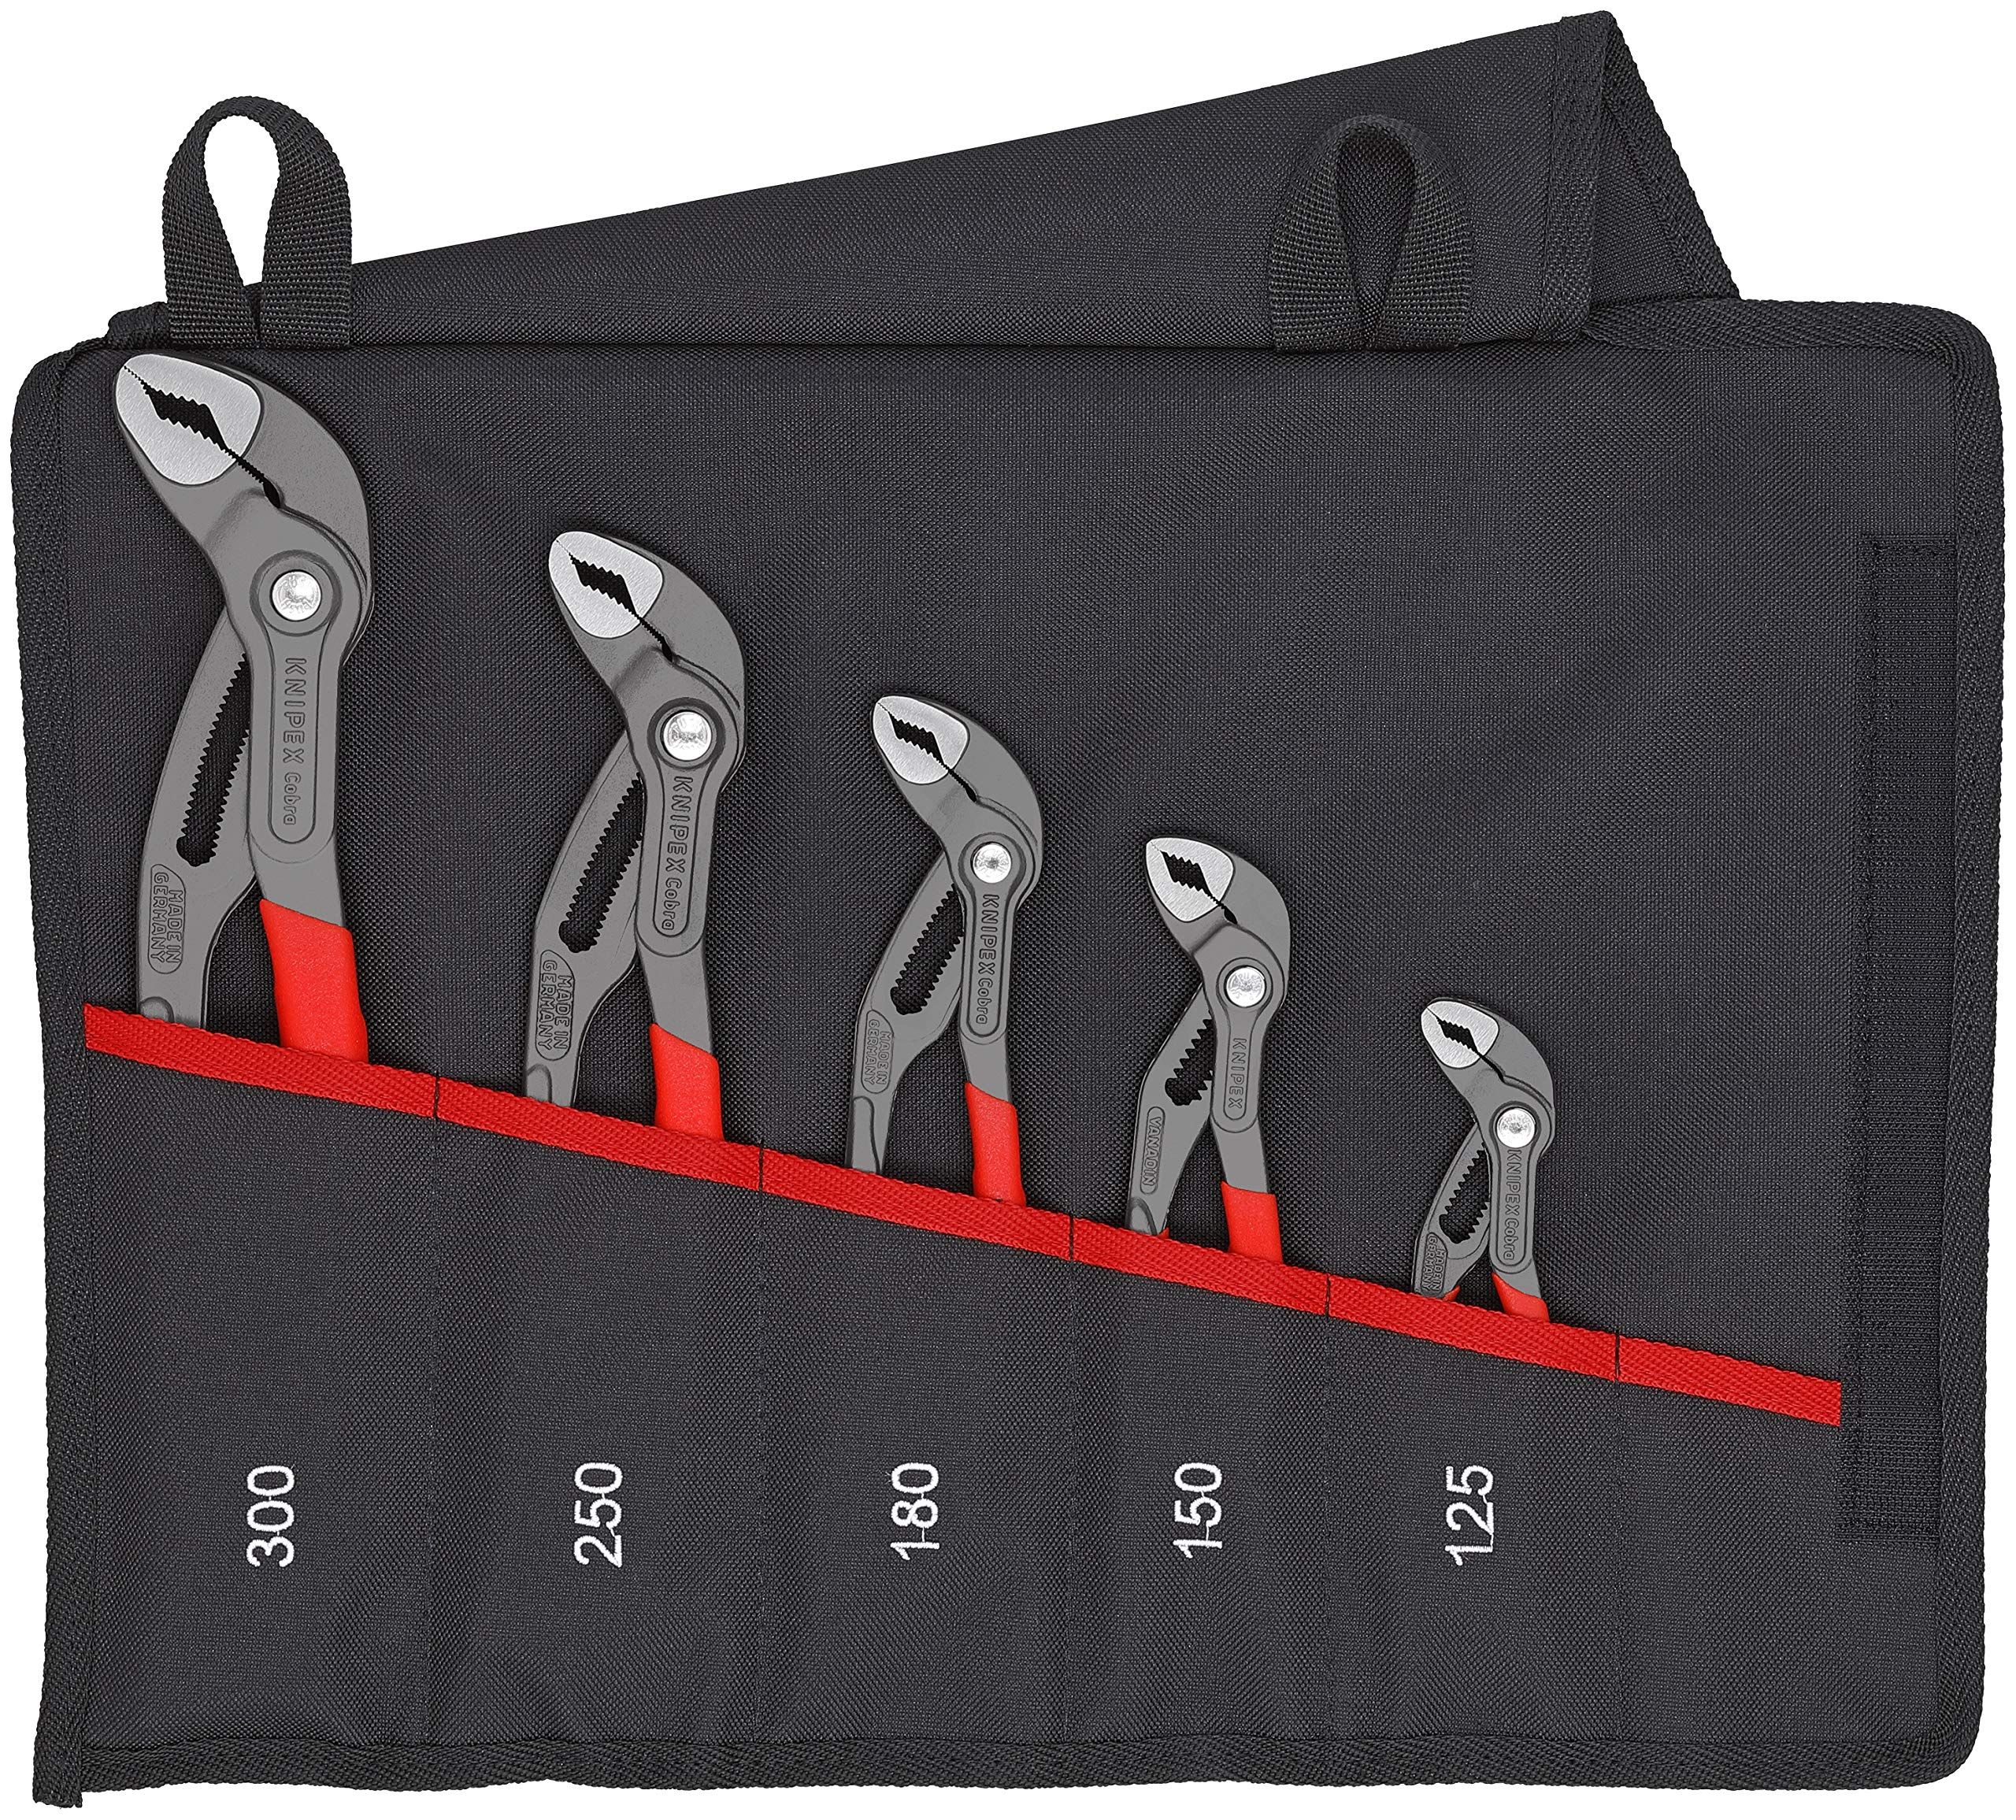 Knipex Tools 00 19 55 S5, Cobra Pliers, 5Piece Set with Tool Pouch by KNIPEX Tools